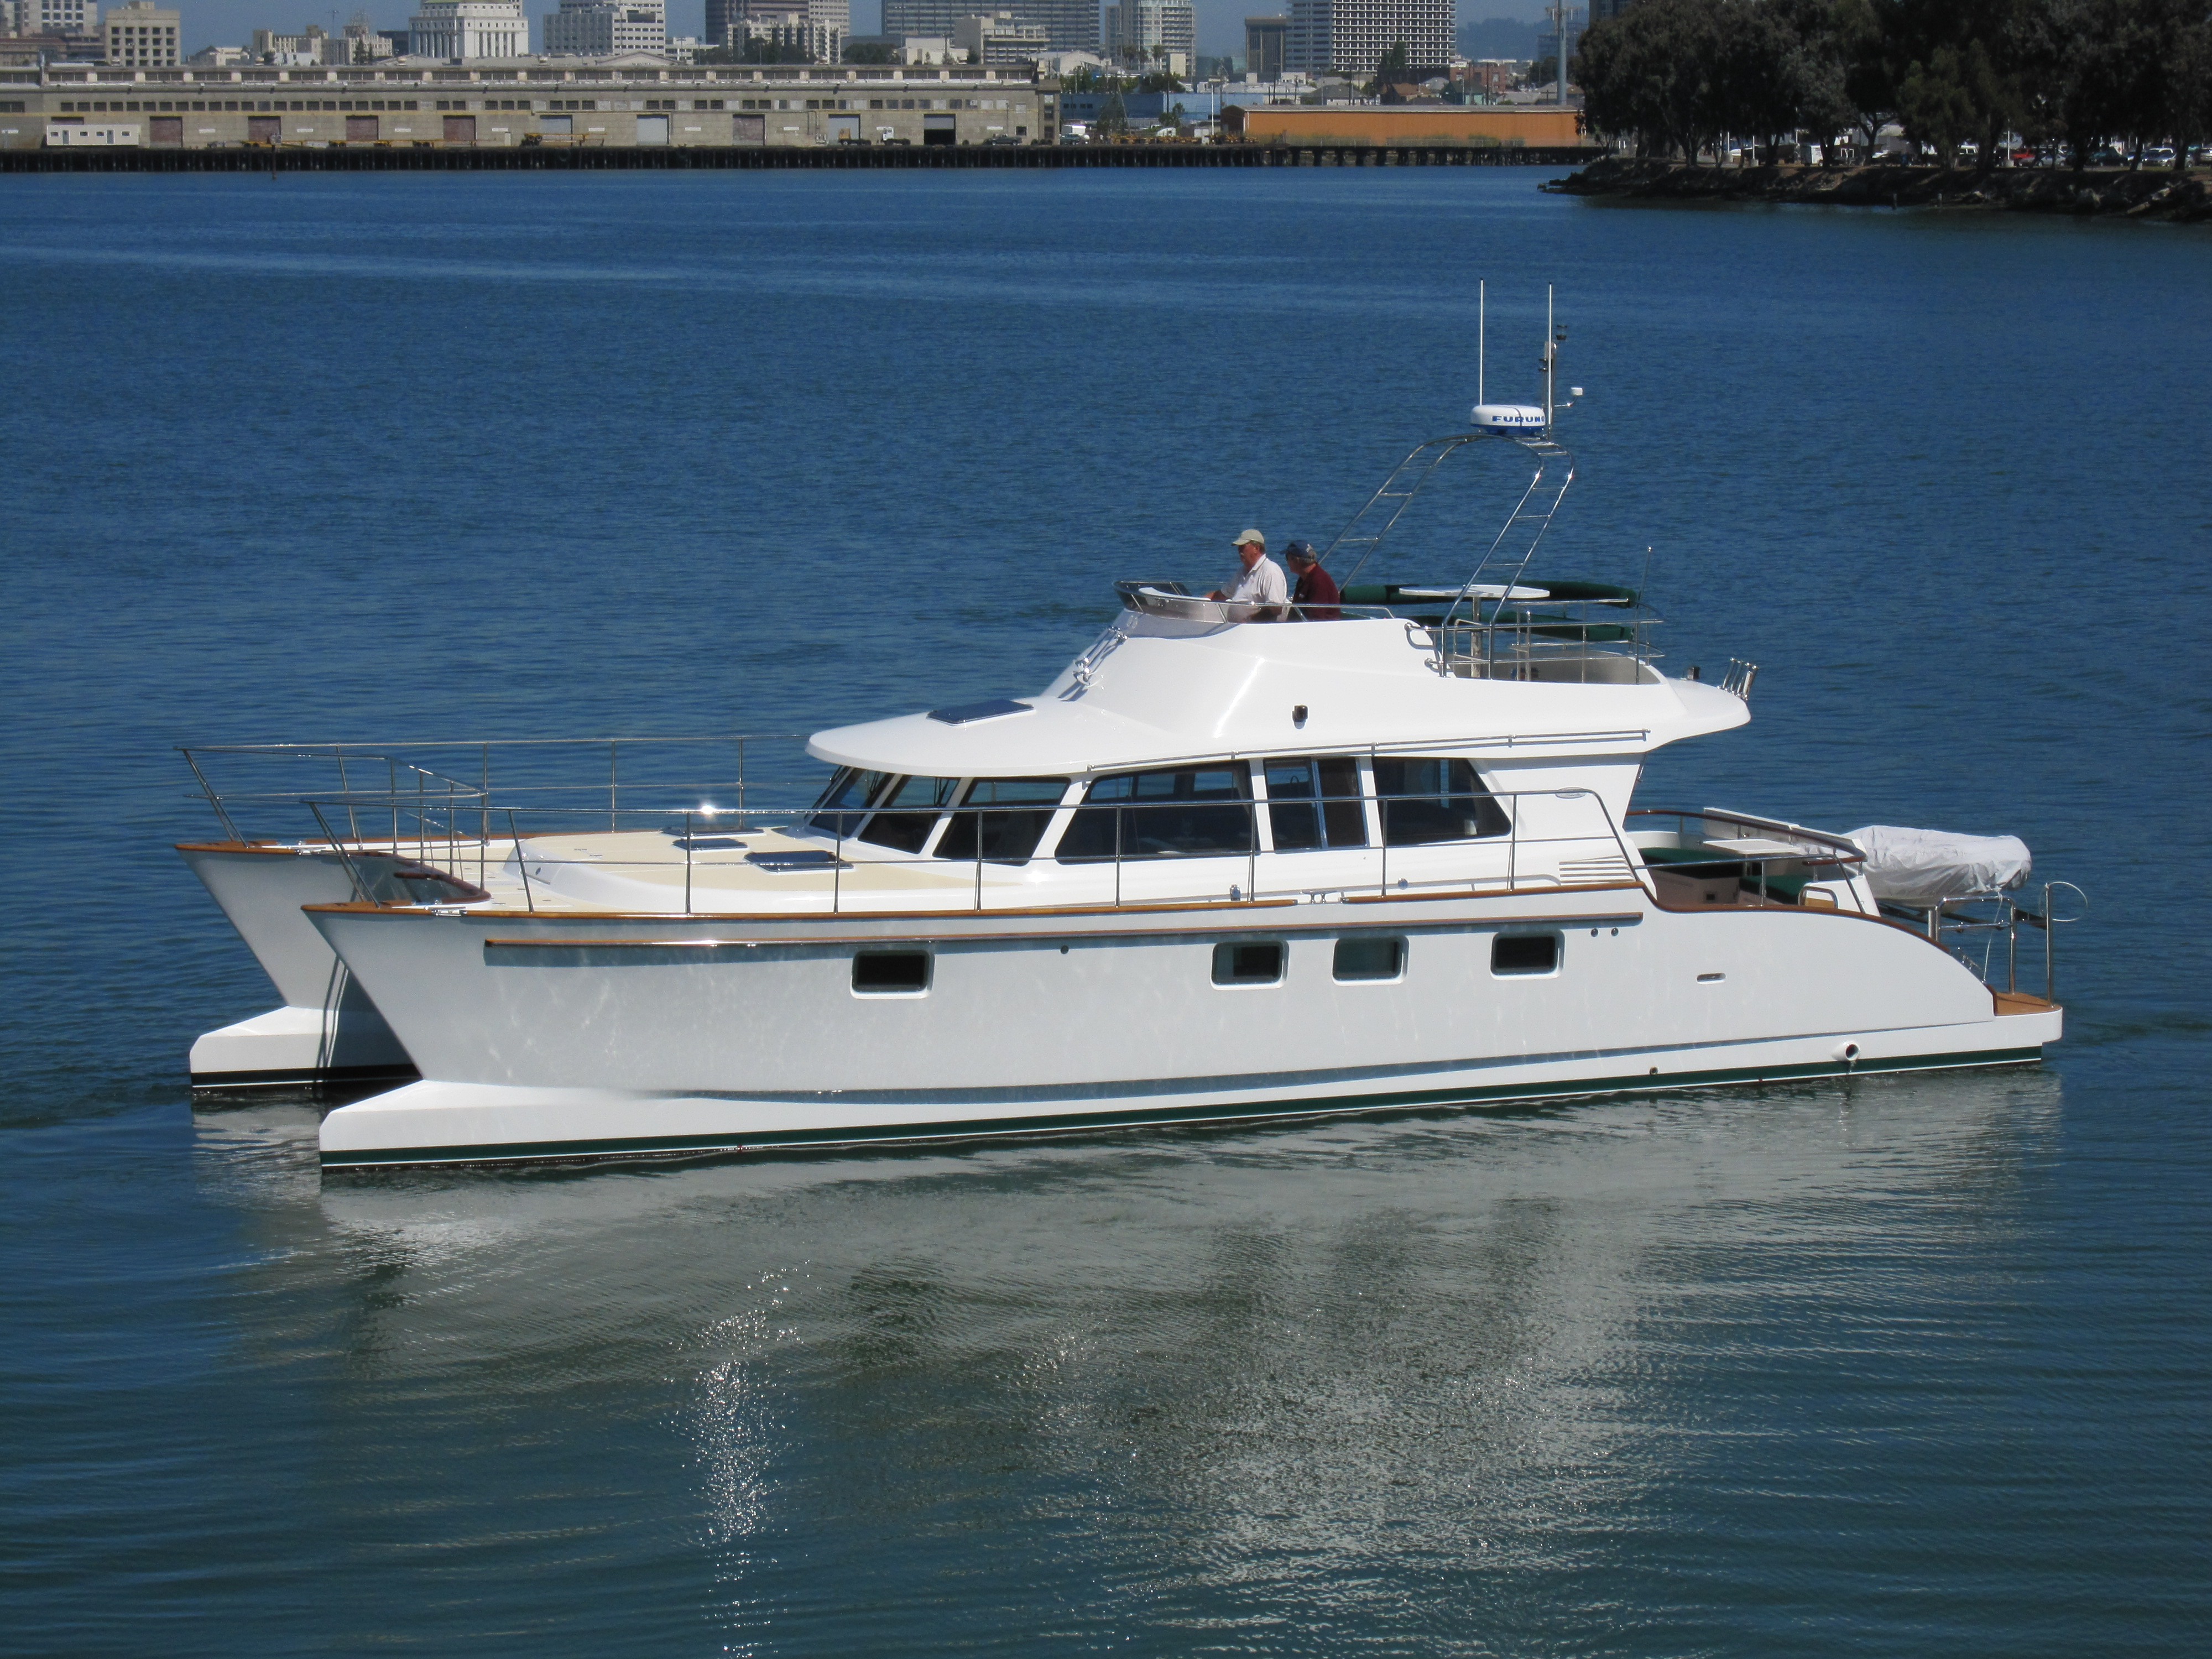 New Boats Journey Cat 47 Review By Nw Yachting Ocean